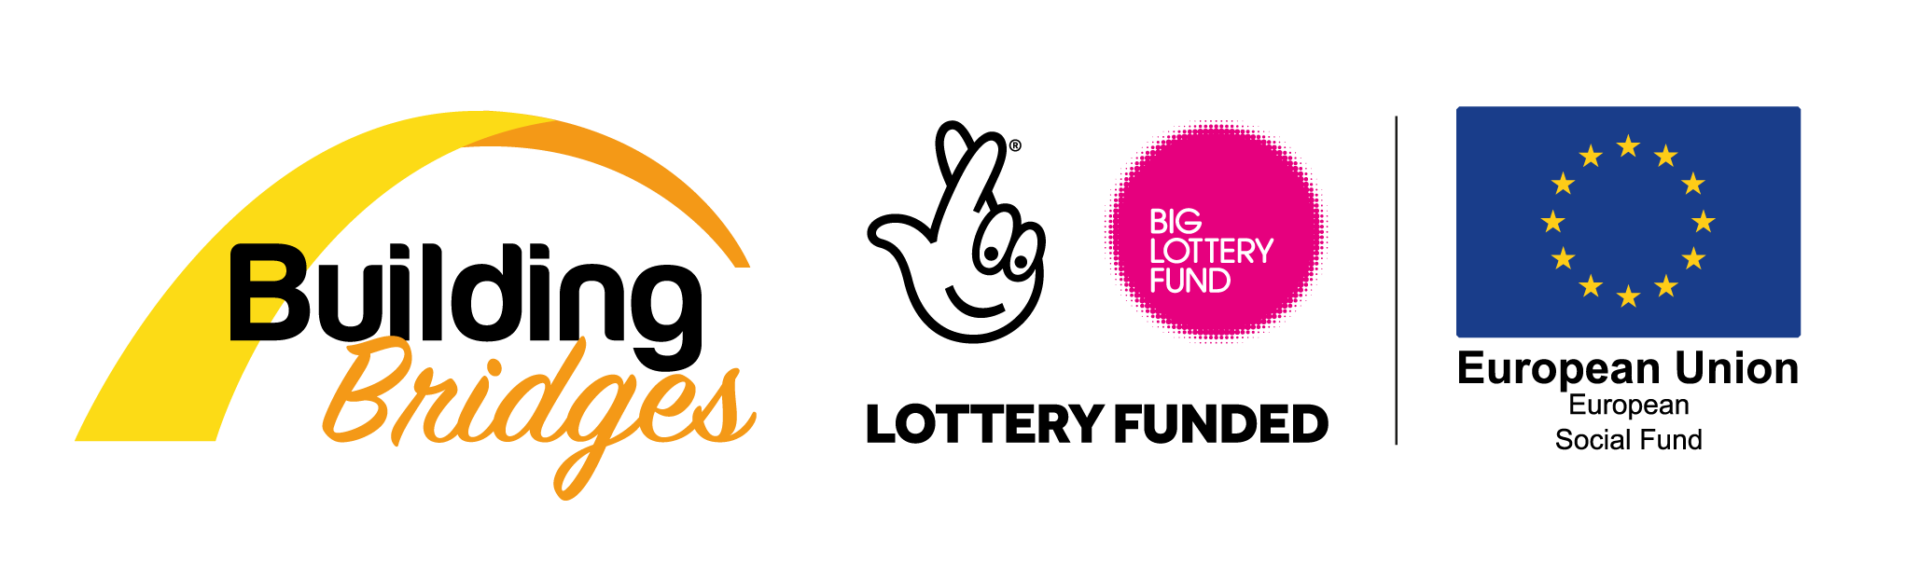 Building Bridges, Big Lottery Fund and European Social Fund's logos